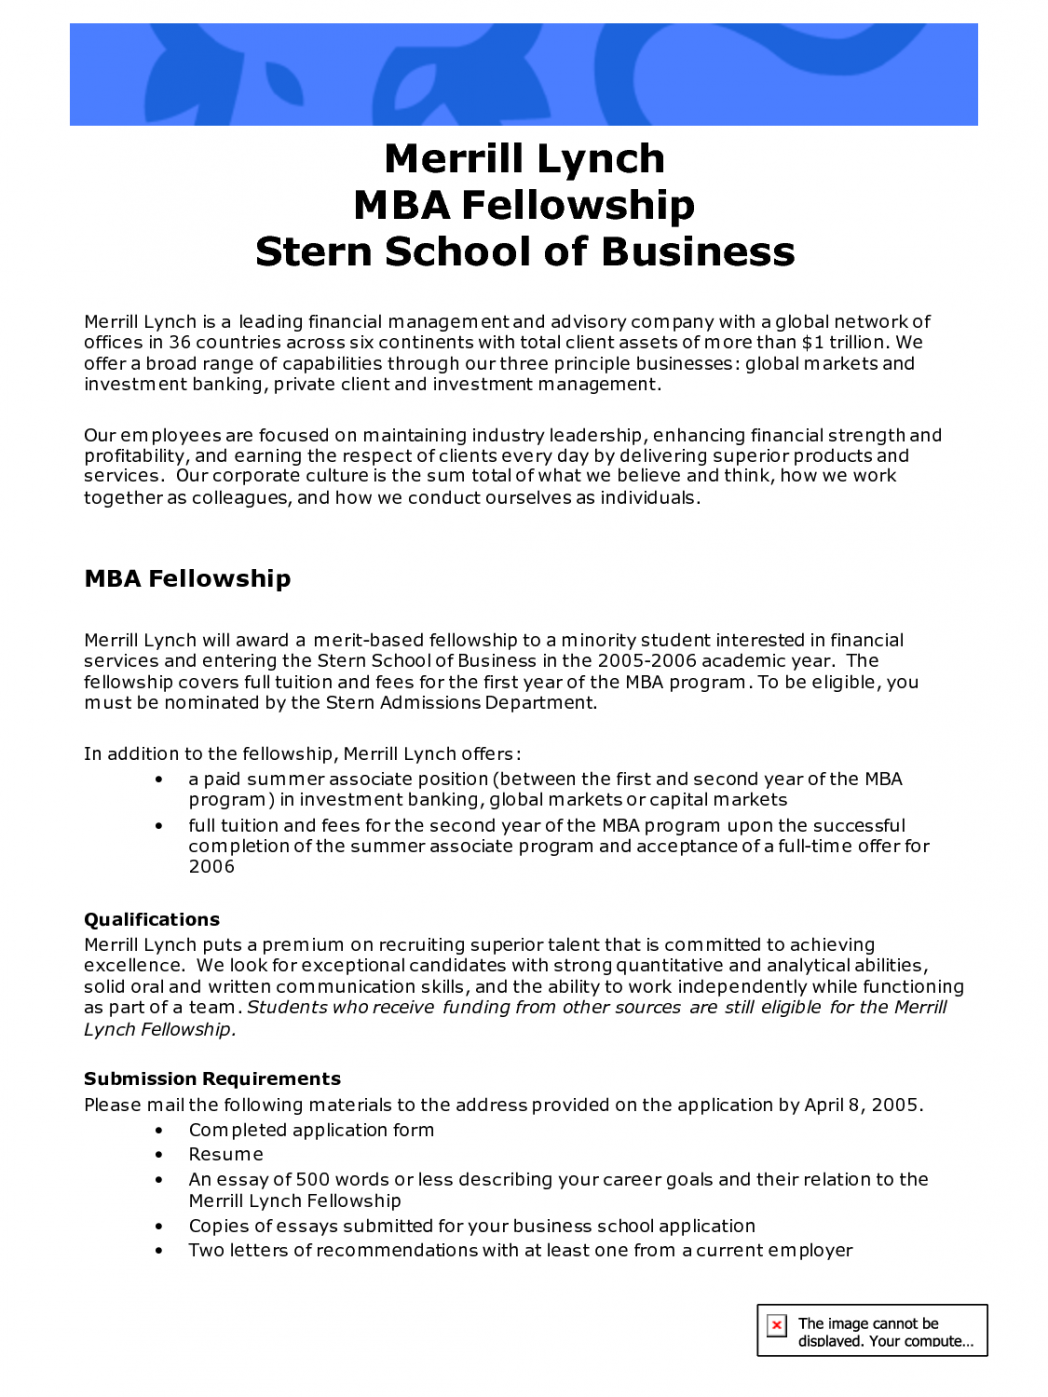 014 Career Goals Essay Short Term And Long Essays For Mba Research Paper Service Sample 4s 1048x1397 Fantastic Business Examples Scholarship Pdf Full